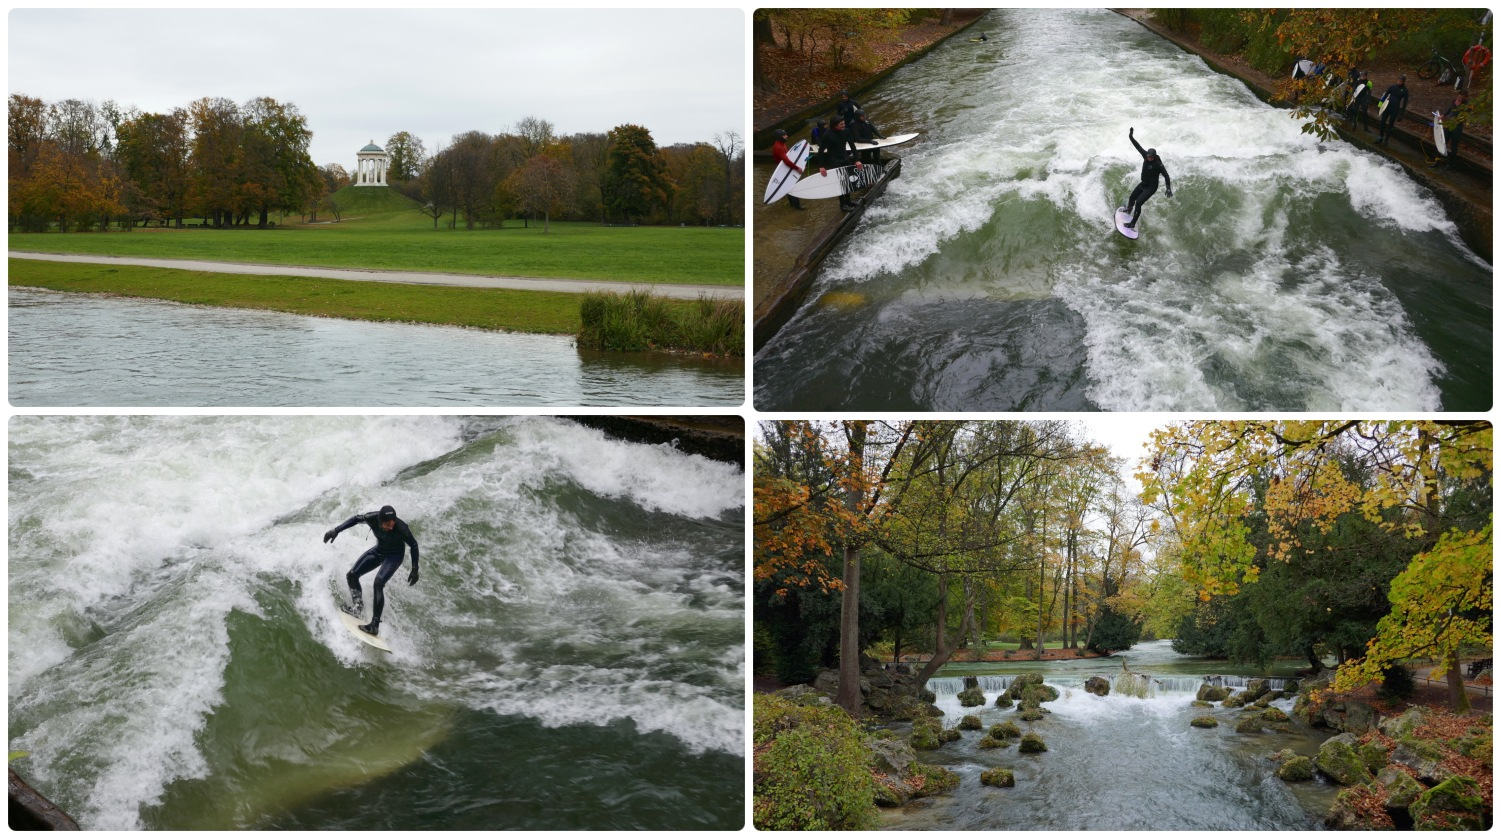 English Garden (Englischer Garten) in Munich, Germany is a huge central park with activities for just about everyone!